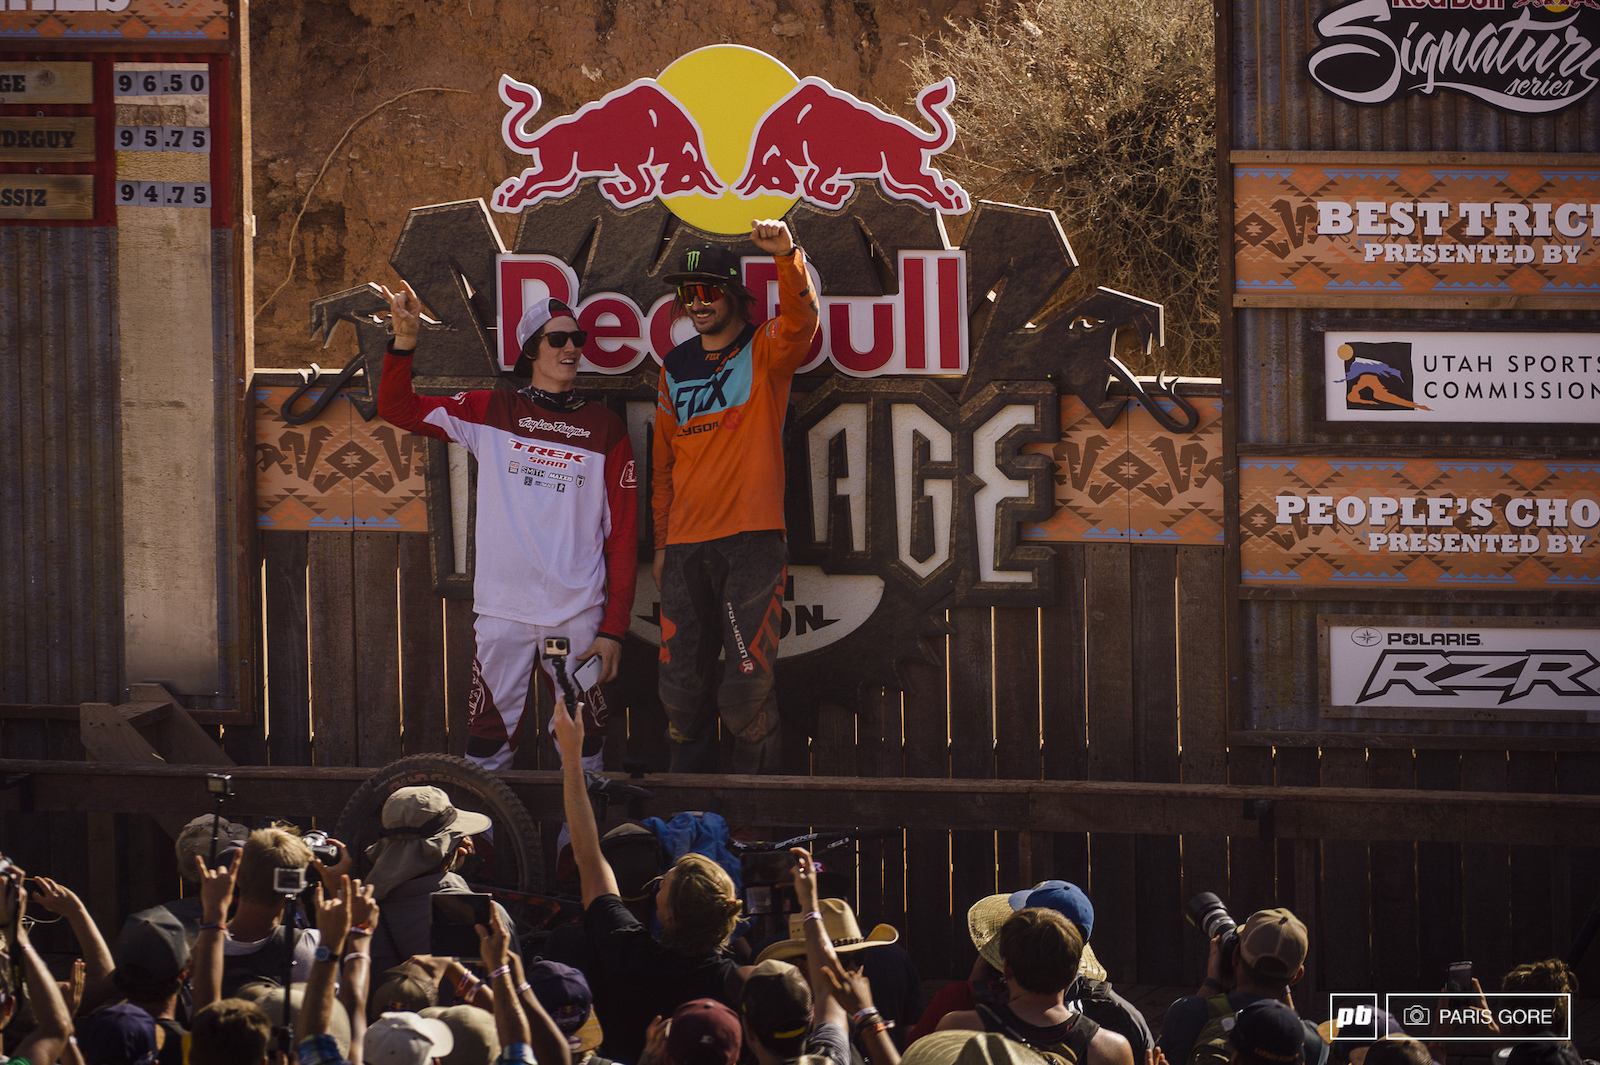 Sam Renyolds won a pile of cash for best trick and Brandon Semenuk scored himself a Polaris RZR for the peoples choice award.